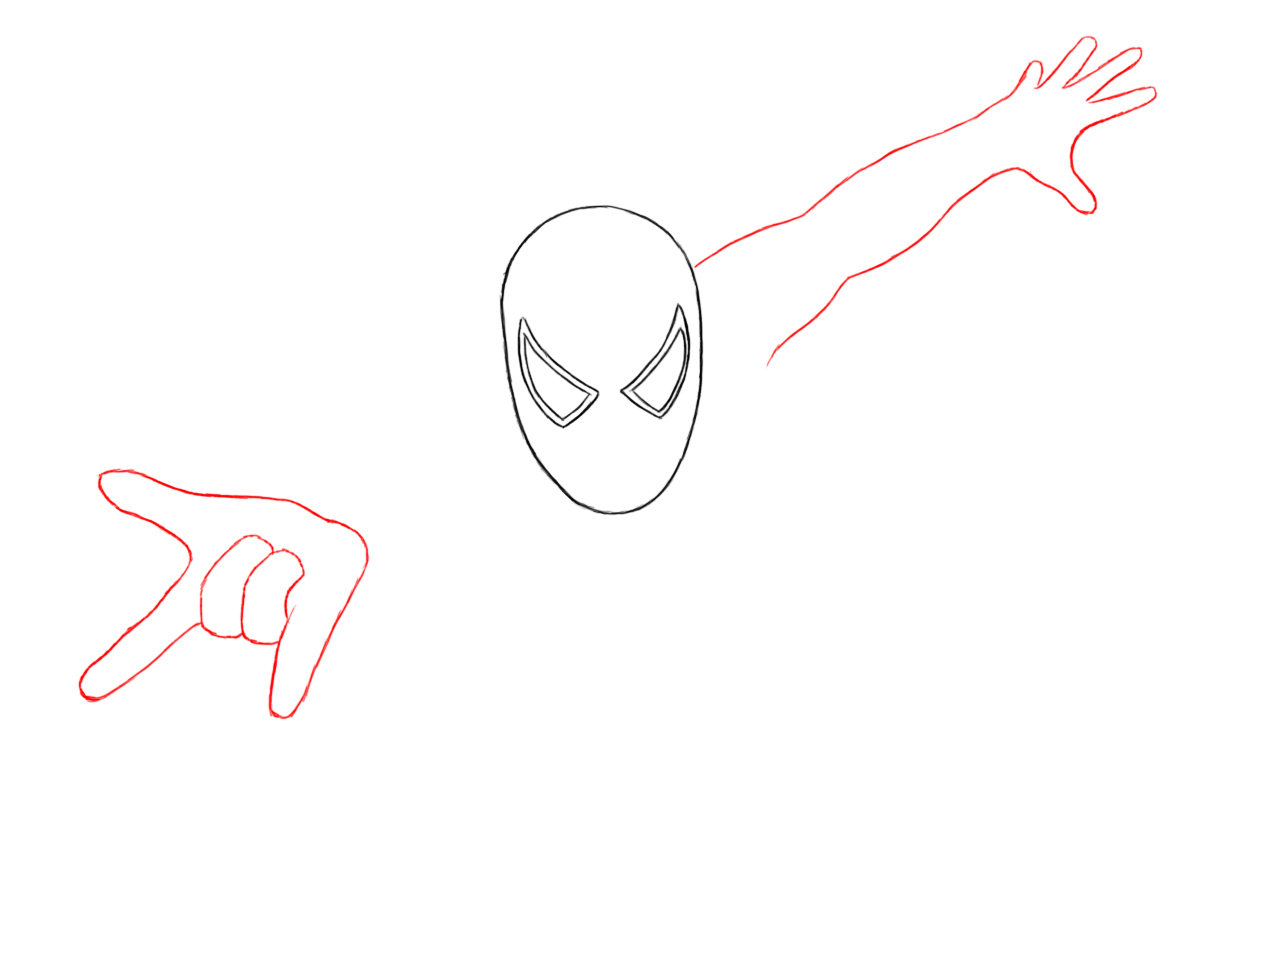 Spiderman Hand Drawing so Draw His Hand With